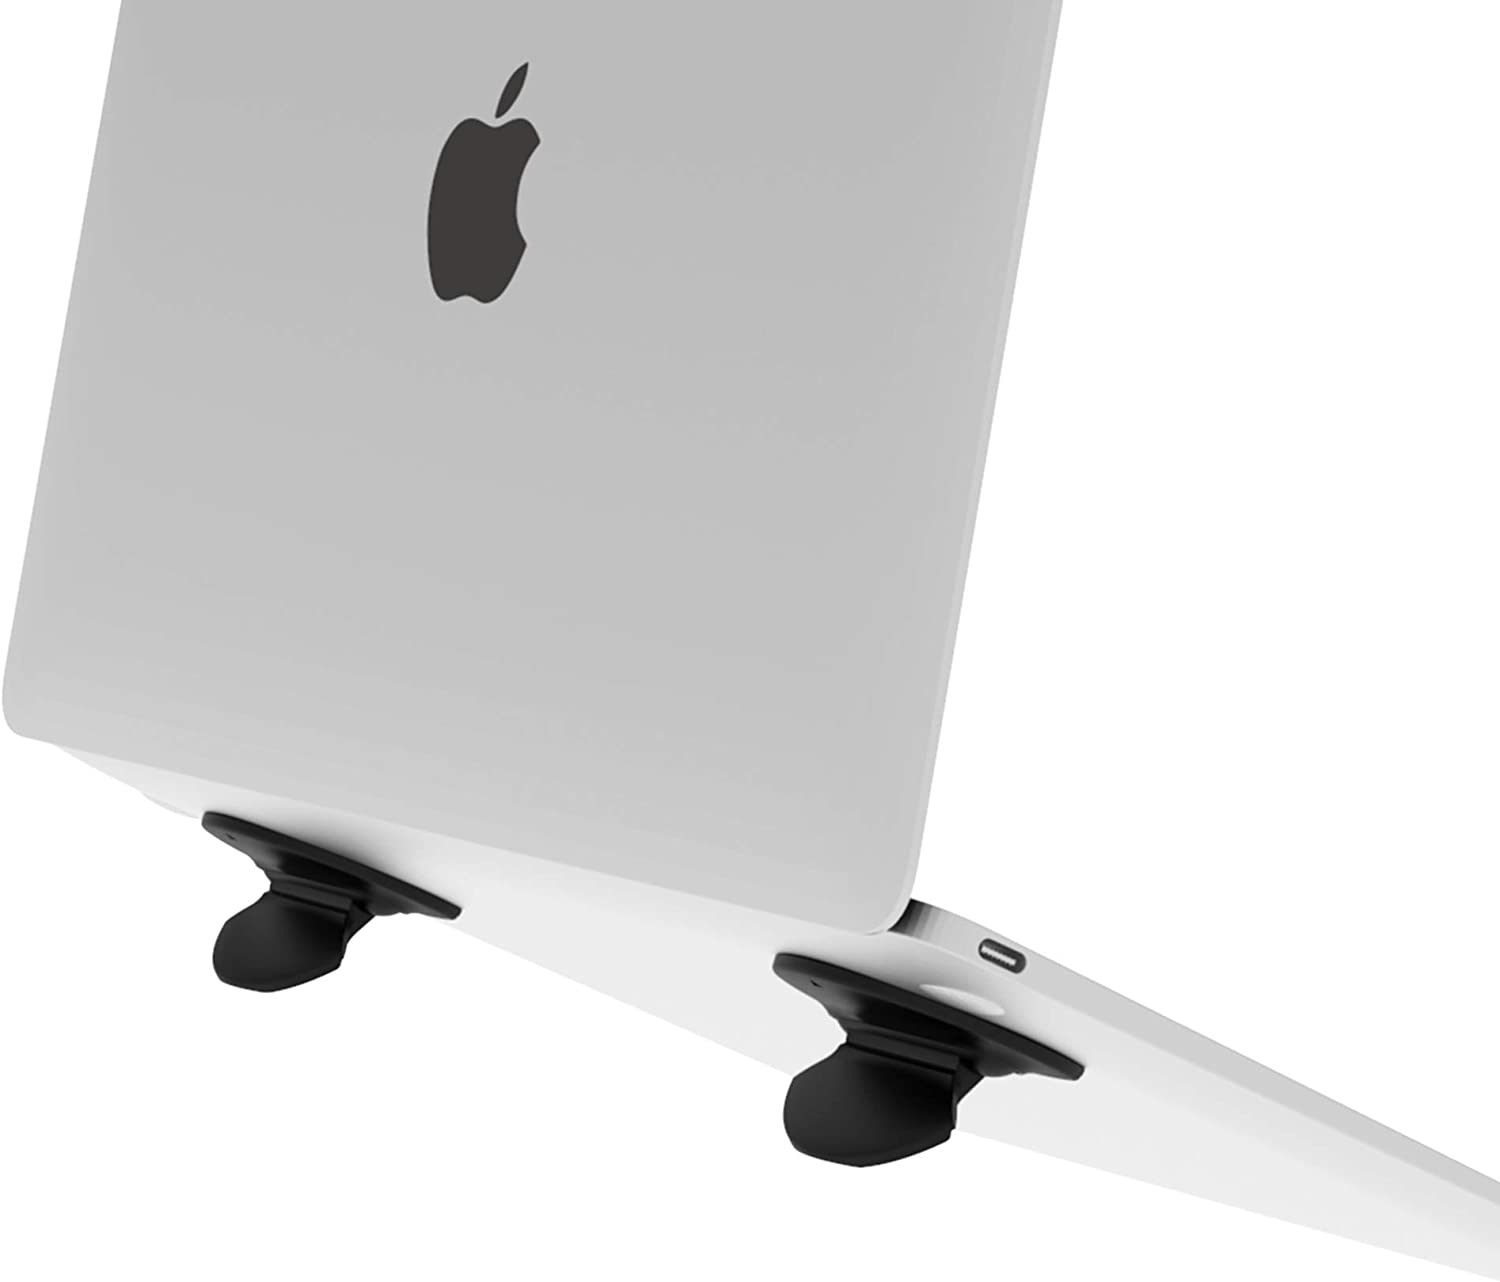 Laptop Computer Holder Desk Stand, Laptop Notebook Tablet Computer Stand for Desk Notebook Tablet Compatible with MacBook Pro, MacBook, MacBook Air, Tablets-Black